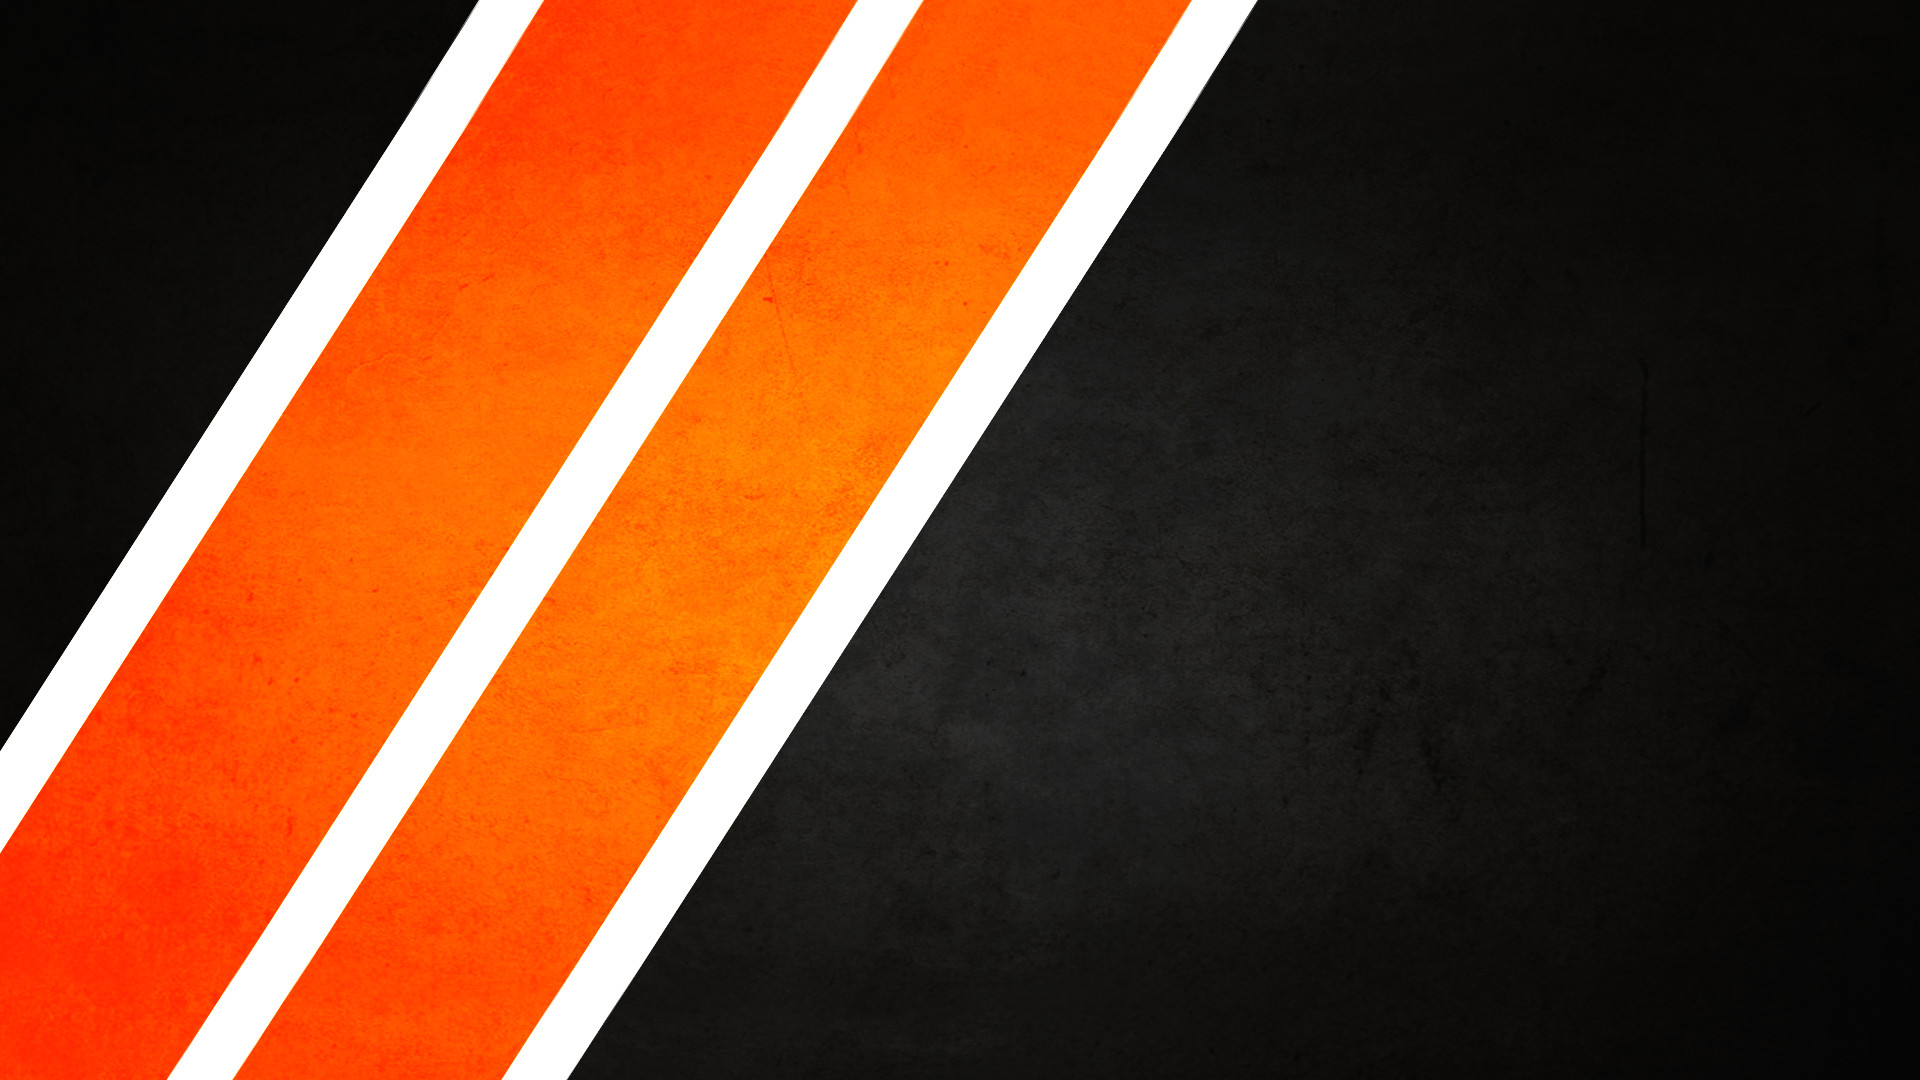 1920x1080  px Orange Abstract Desktop Photos